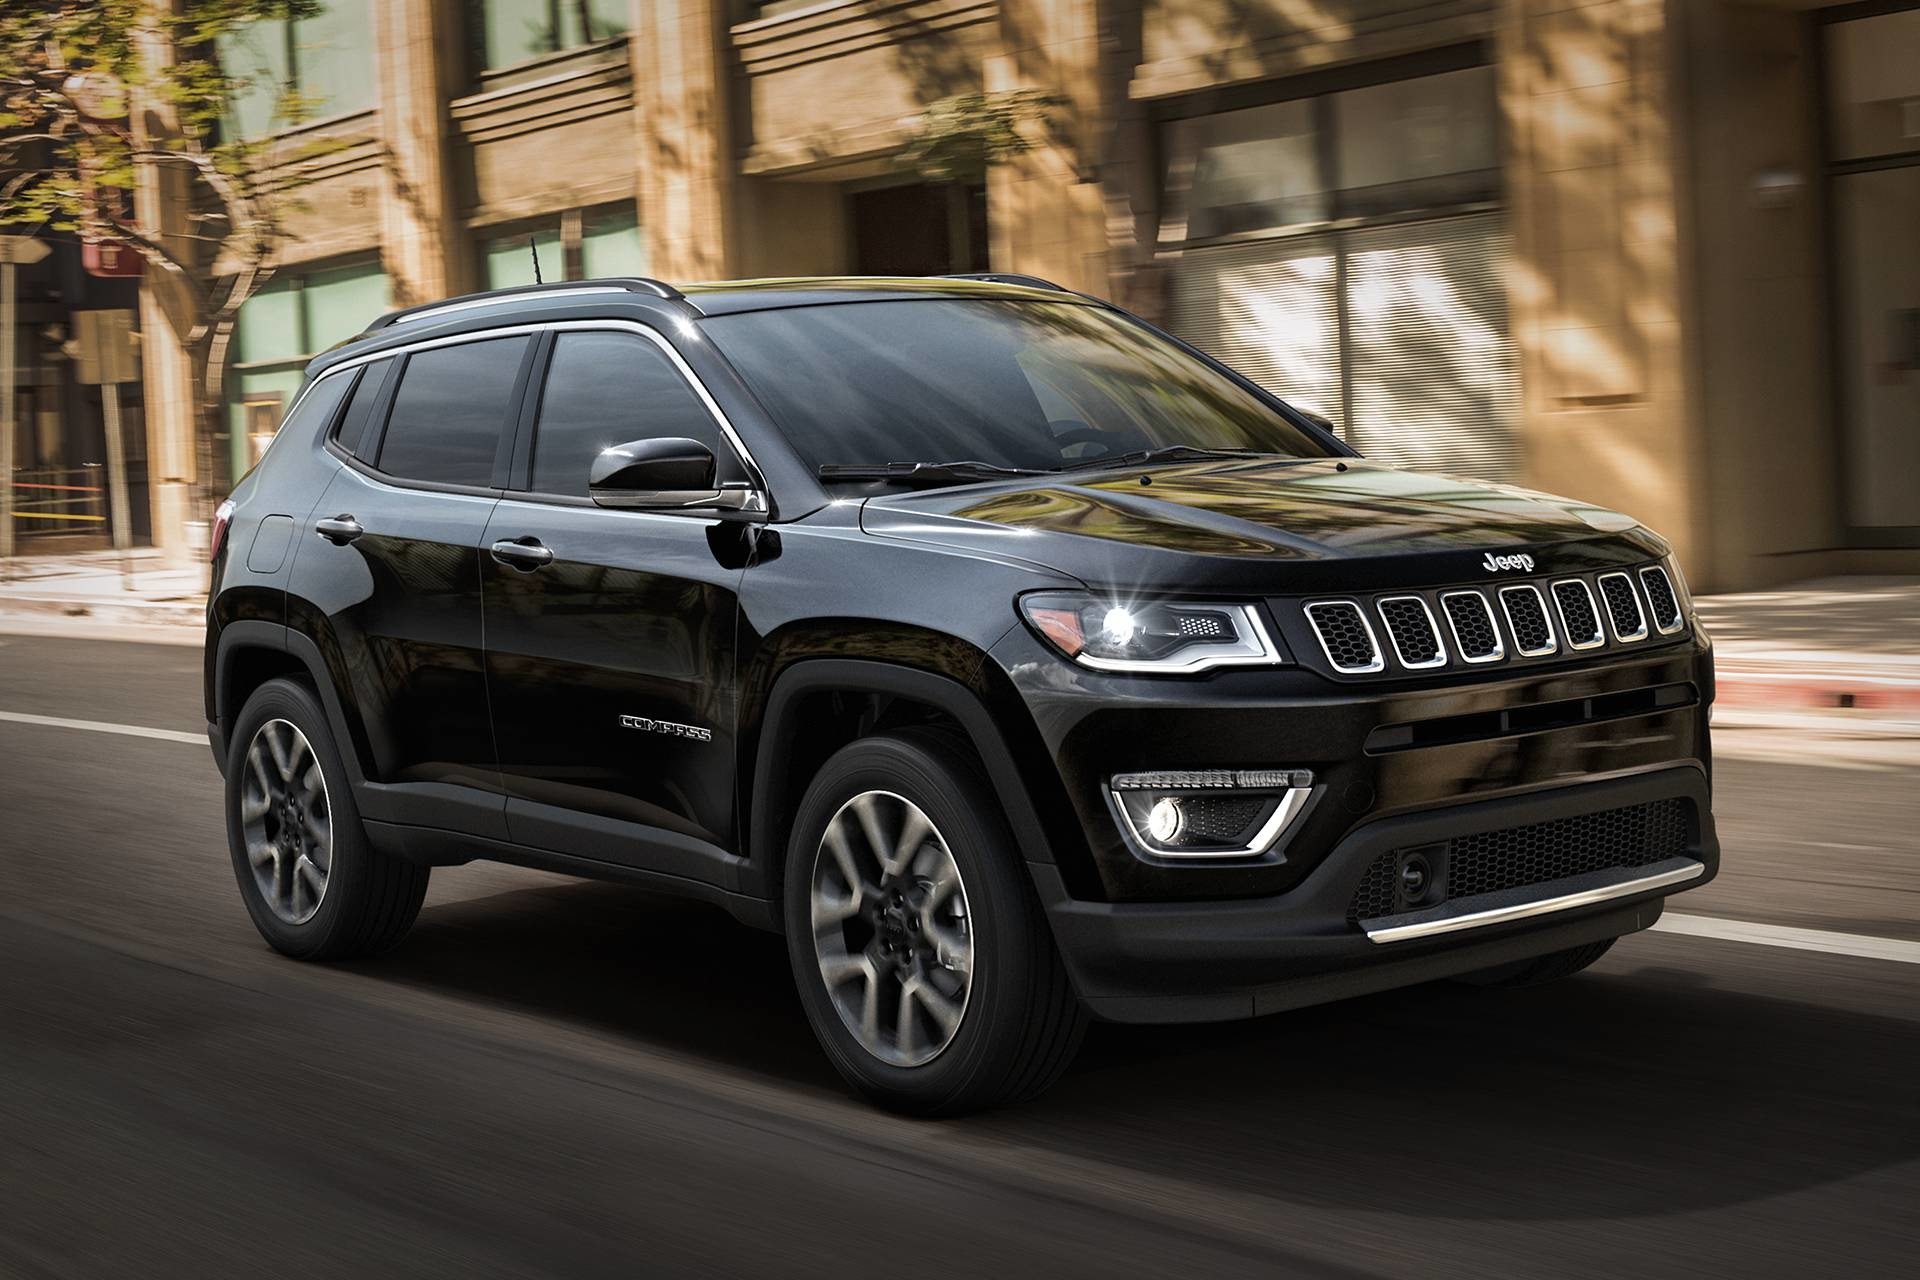 2019 Jeep Compass parked in the city